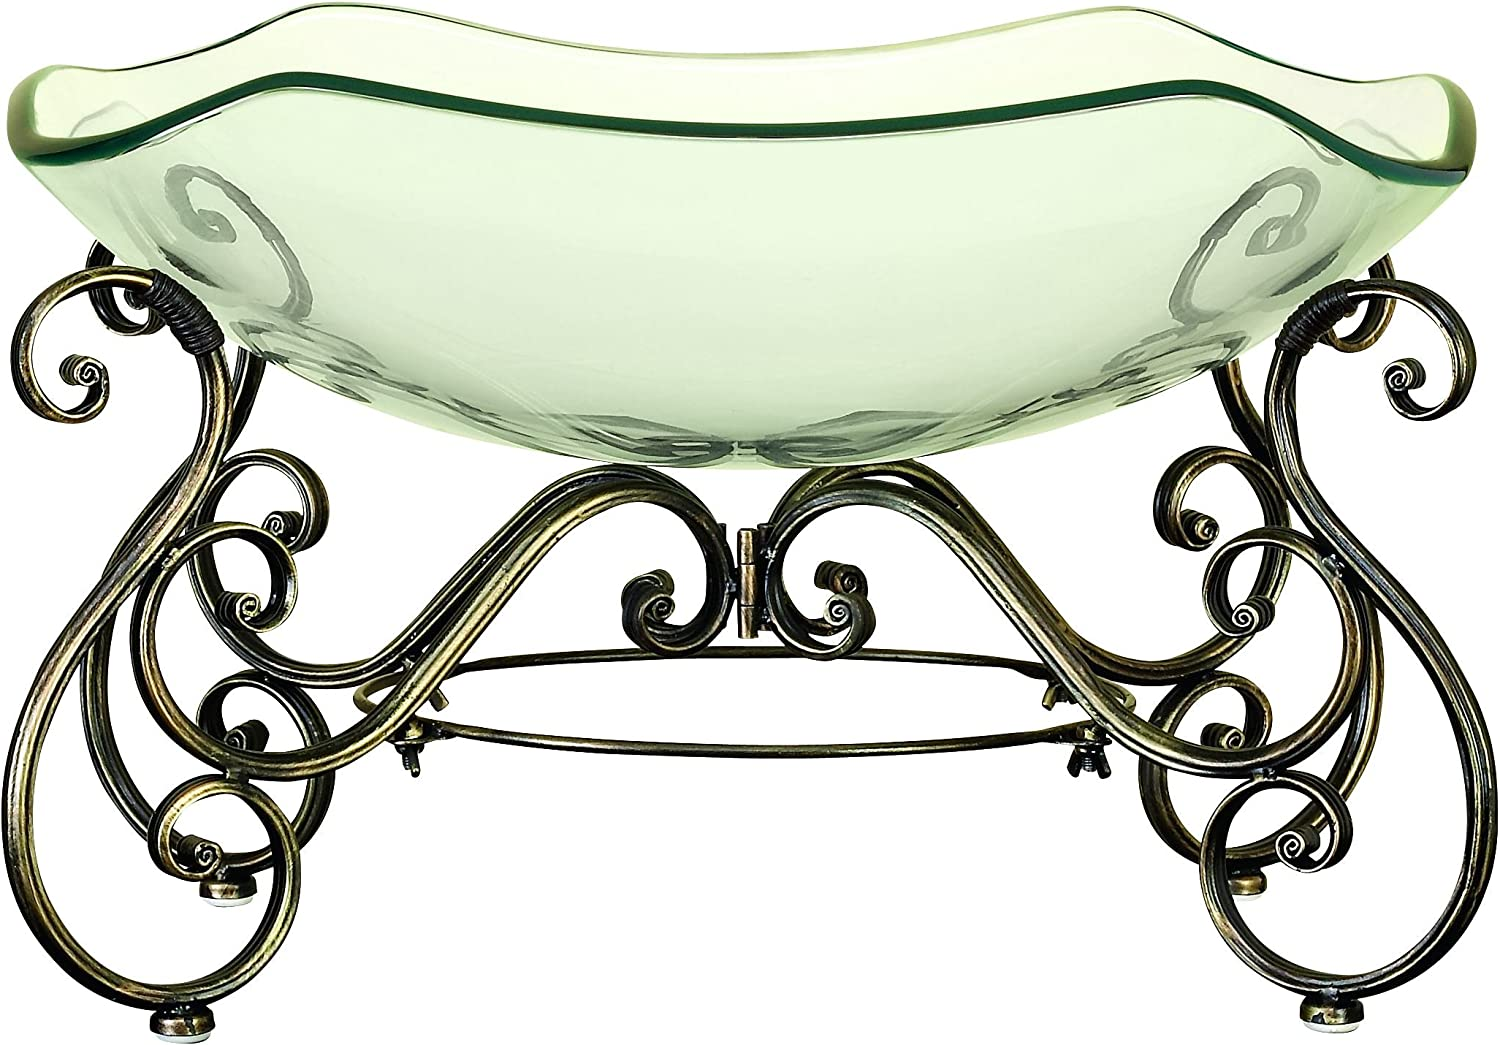 Deco 79 81684 Glass Bowl Metal Stand with Great Decor Appeal